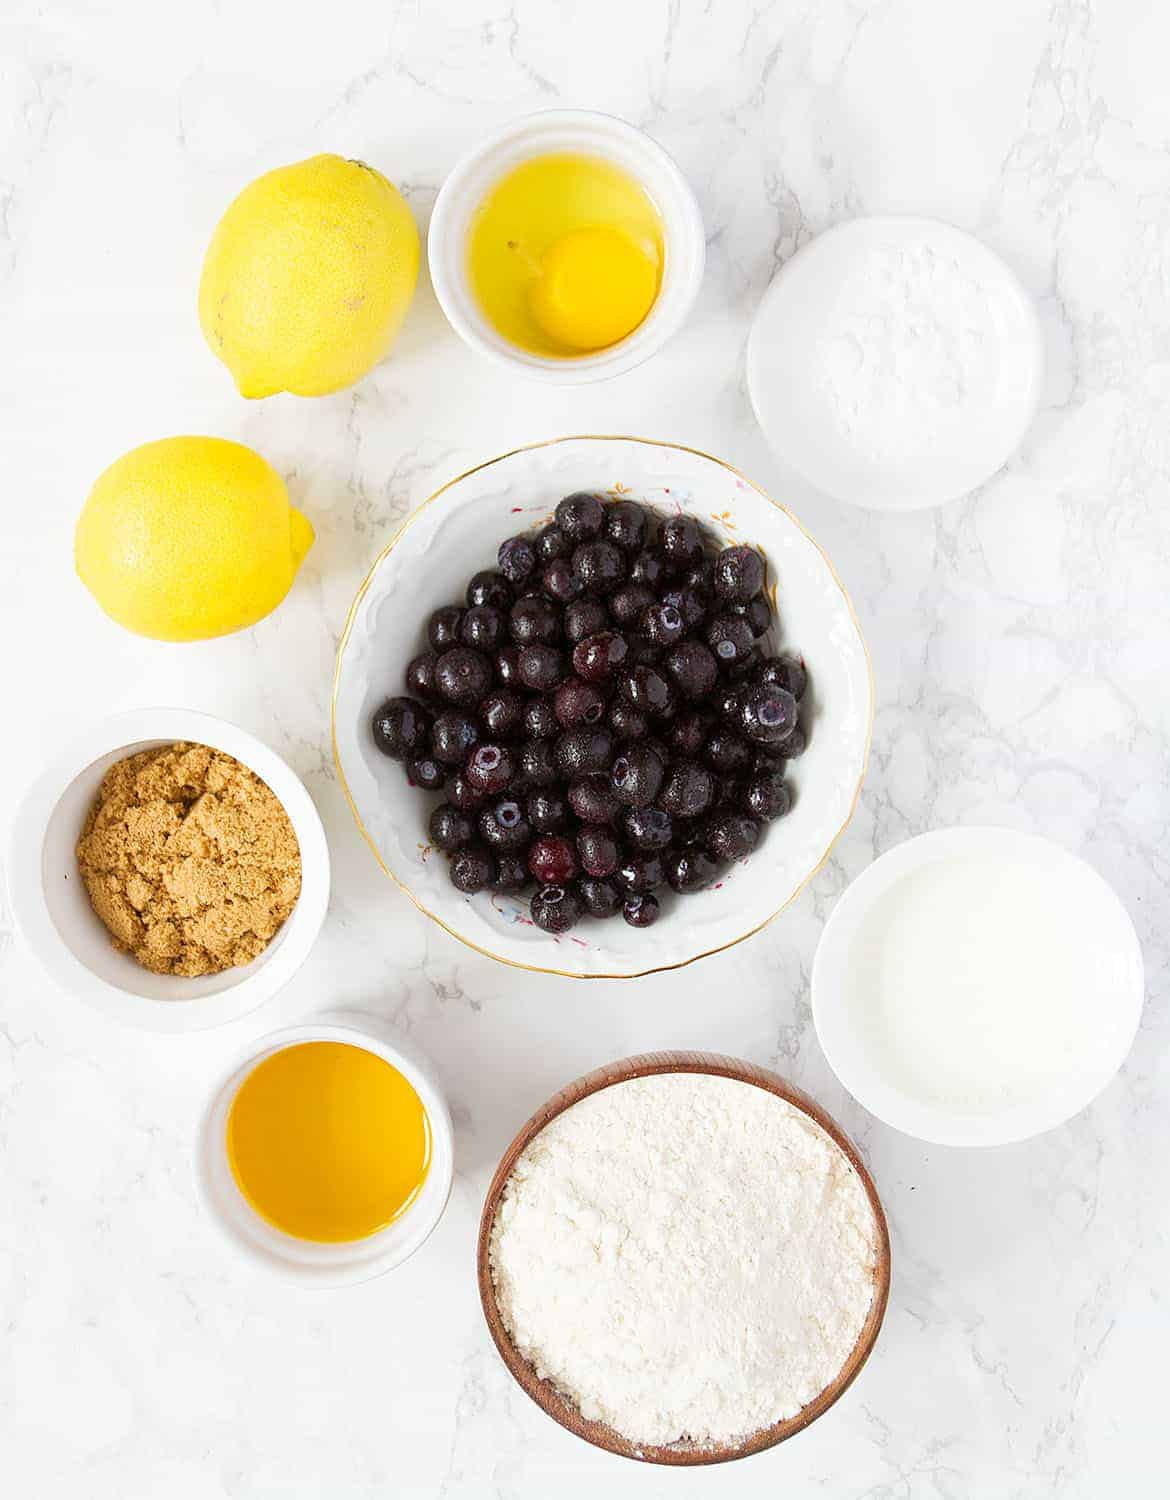 The ingredients for this blueberry muffins are arranged on a white marble surface.